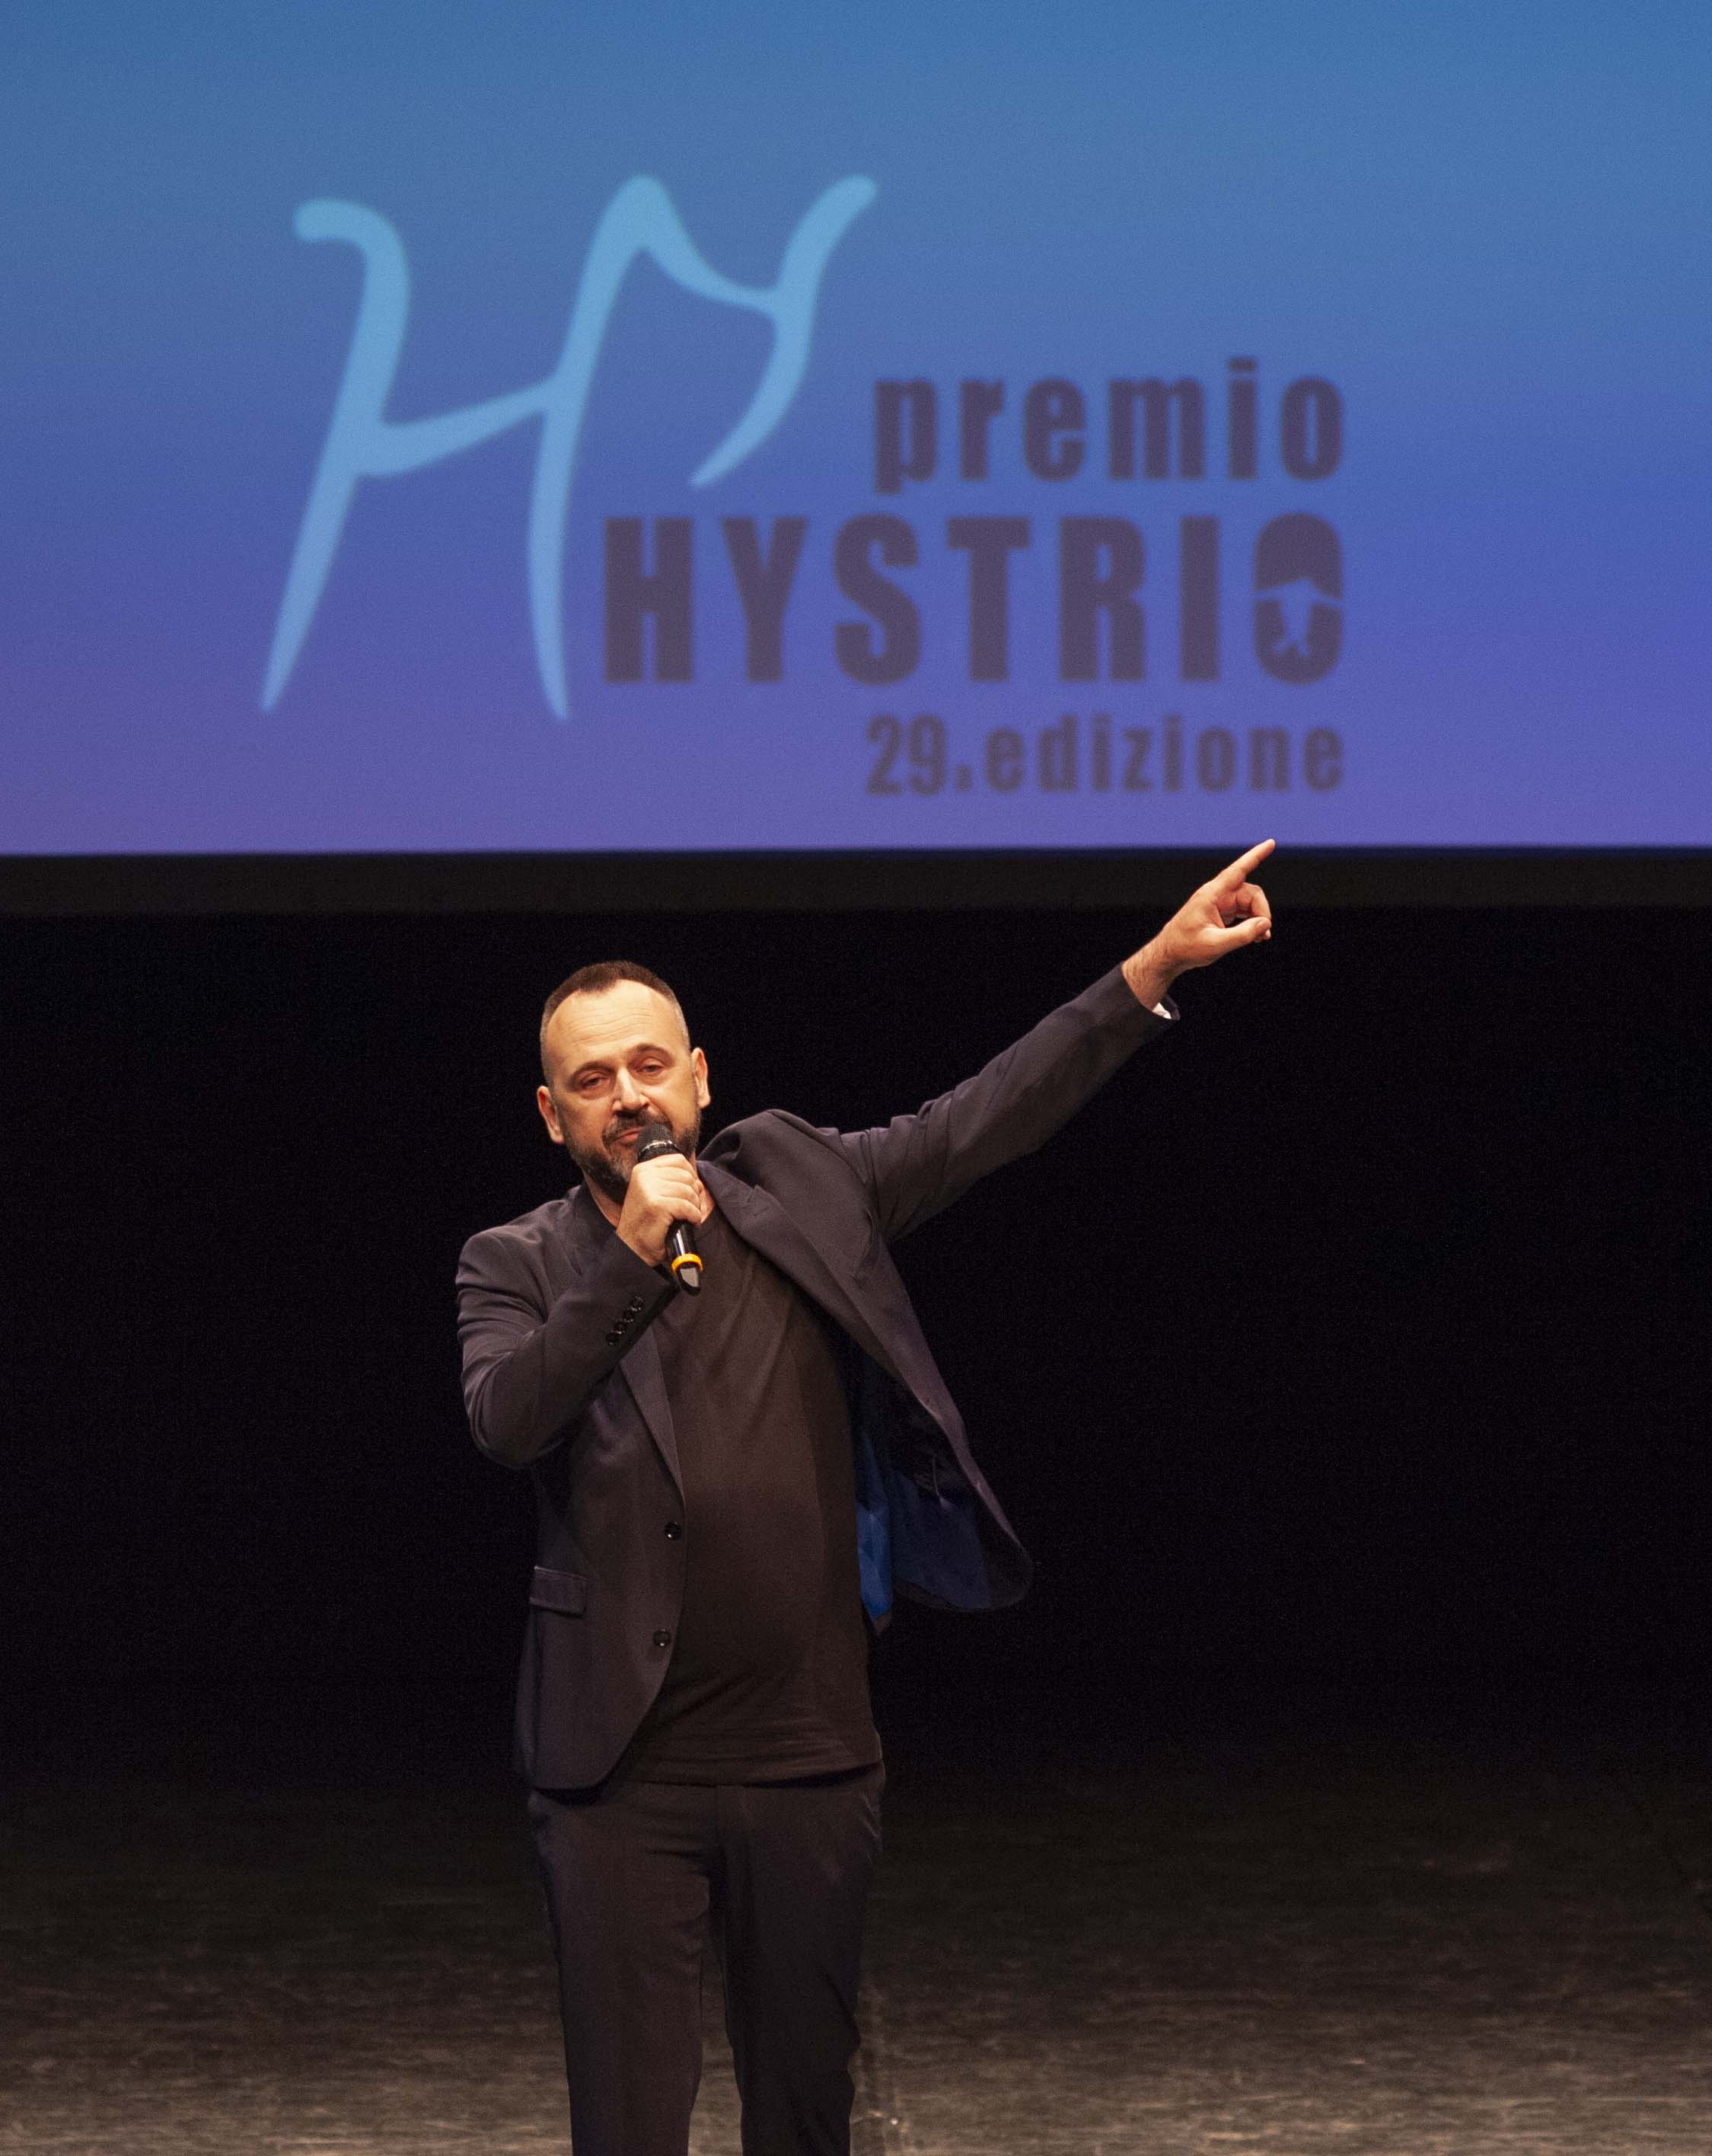 Premio Hystrio 2019 all\